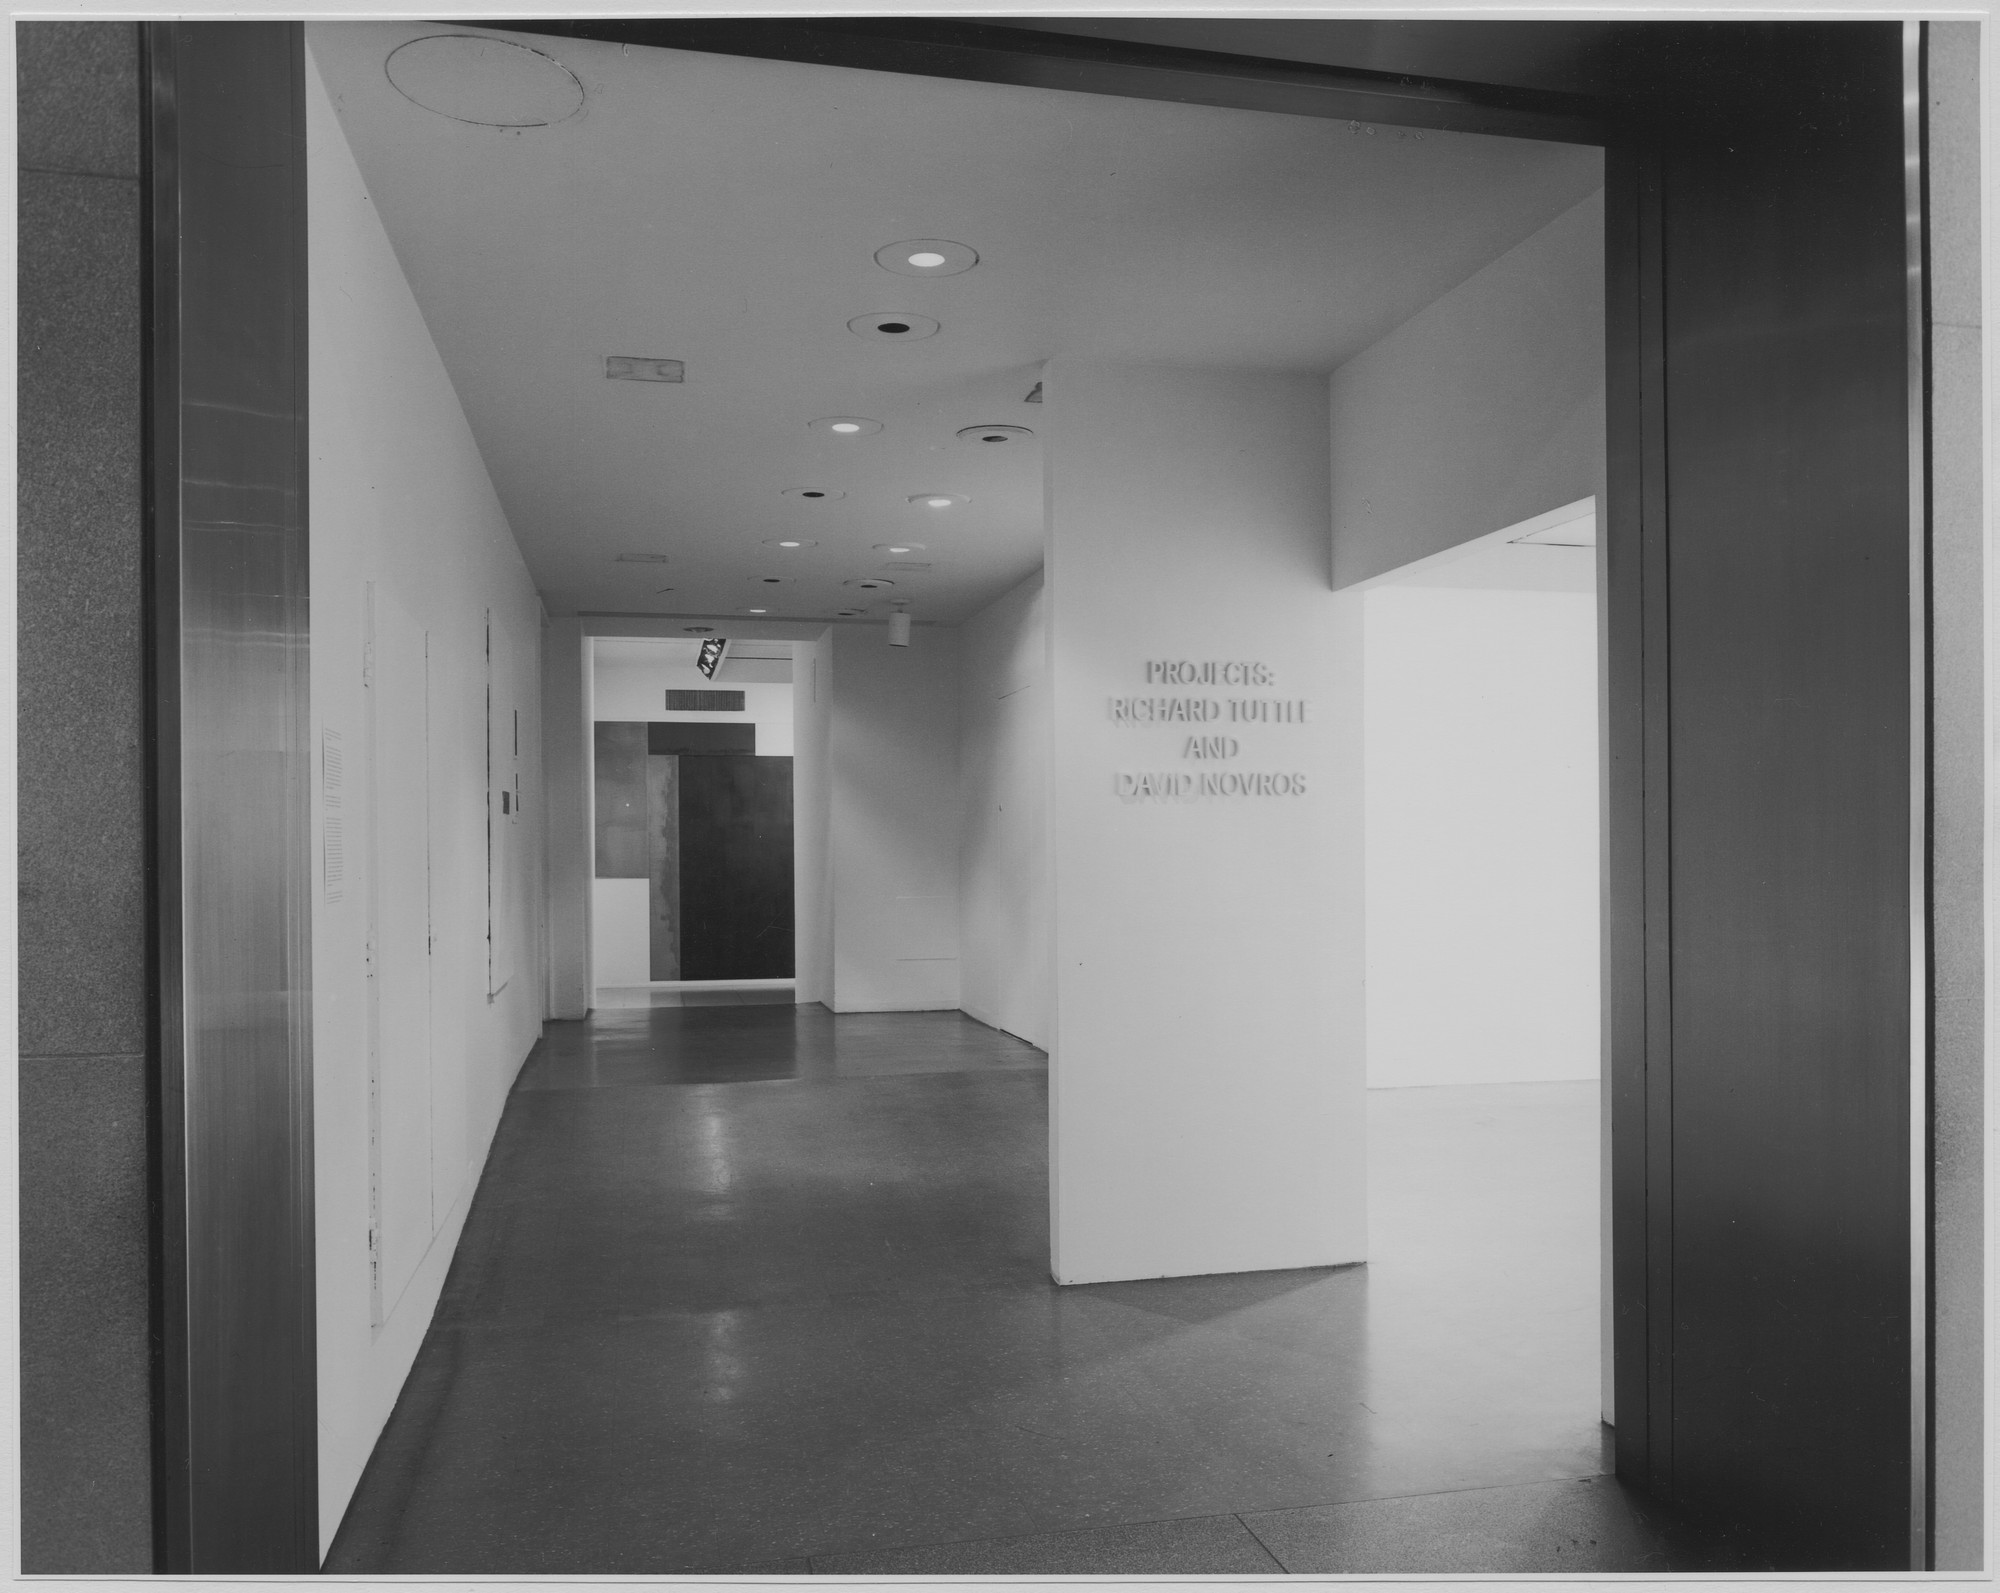 "Installation view of the exhibition, ""Projects: Richard Tuttle & David Novros."" June 12, 1972–July 17, 1972. Photographic Archive. The Museum of Modern Art Archives, New York. IN1006.1. Photograph by James Mathews."